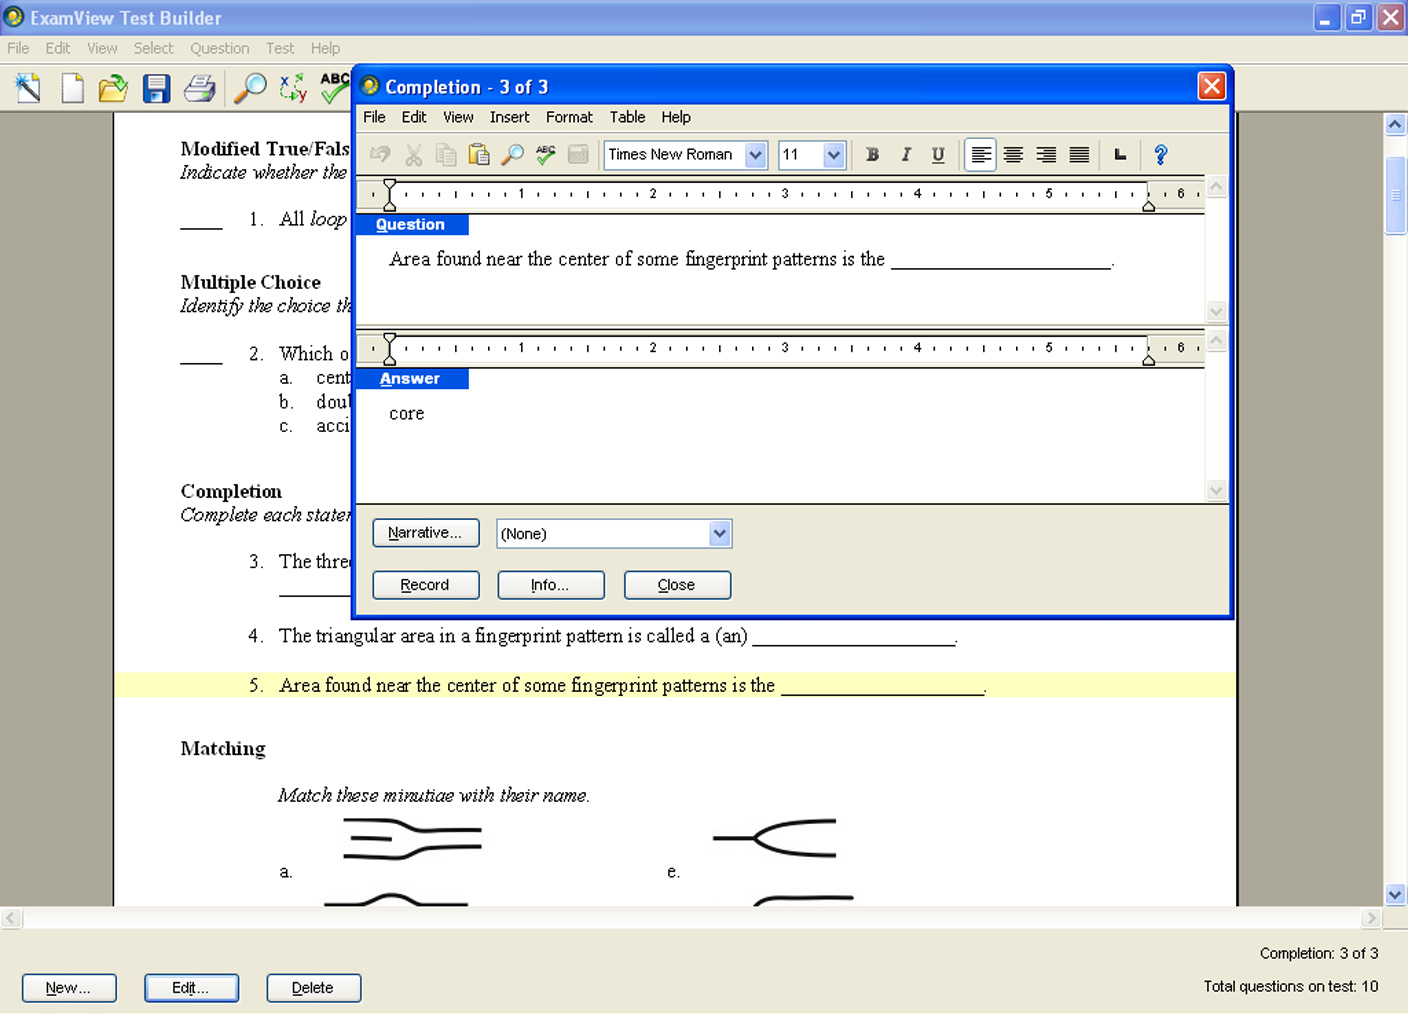 download examview test generator